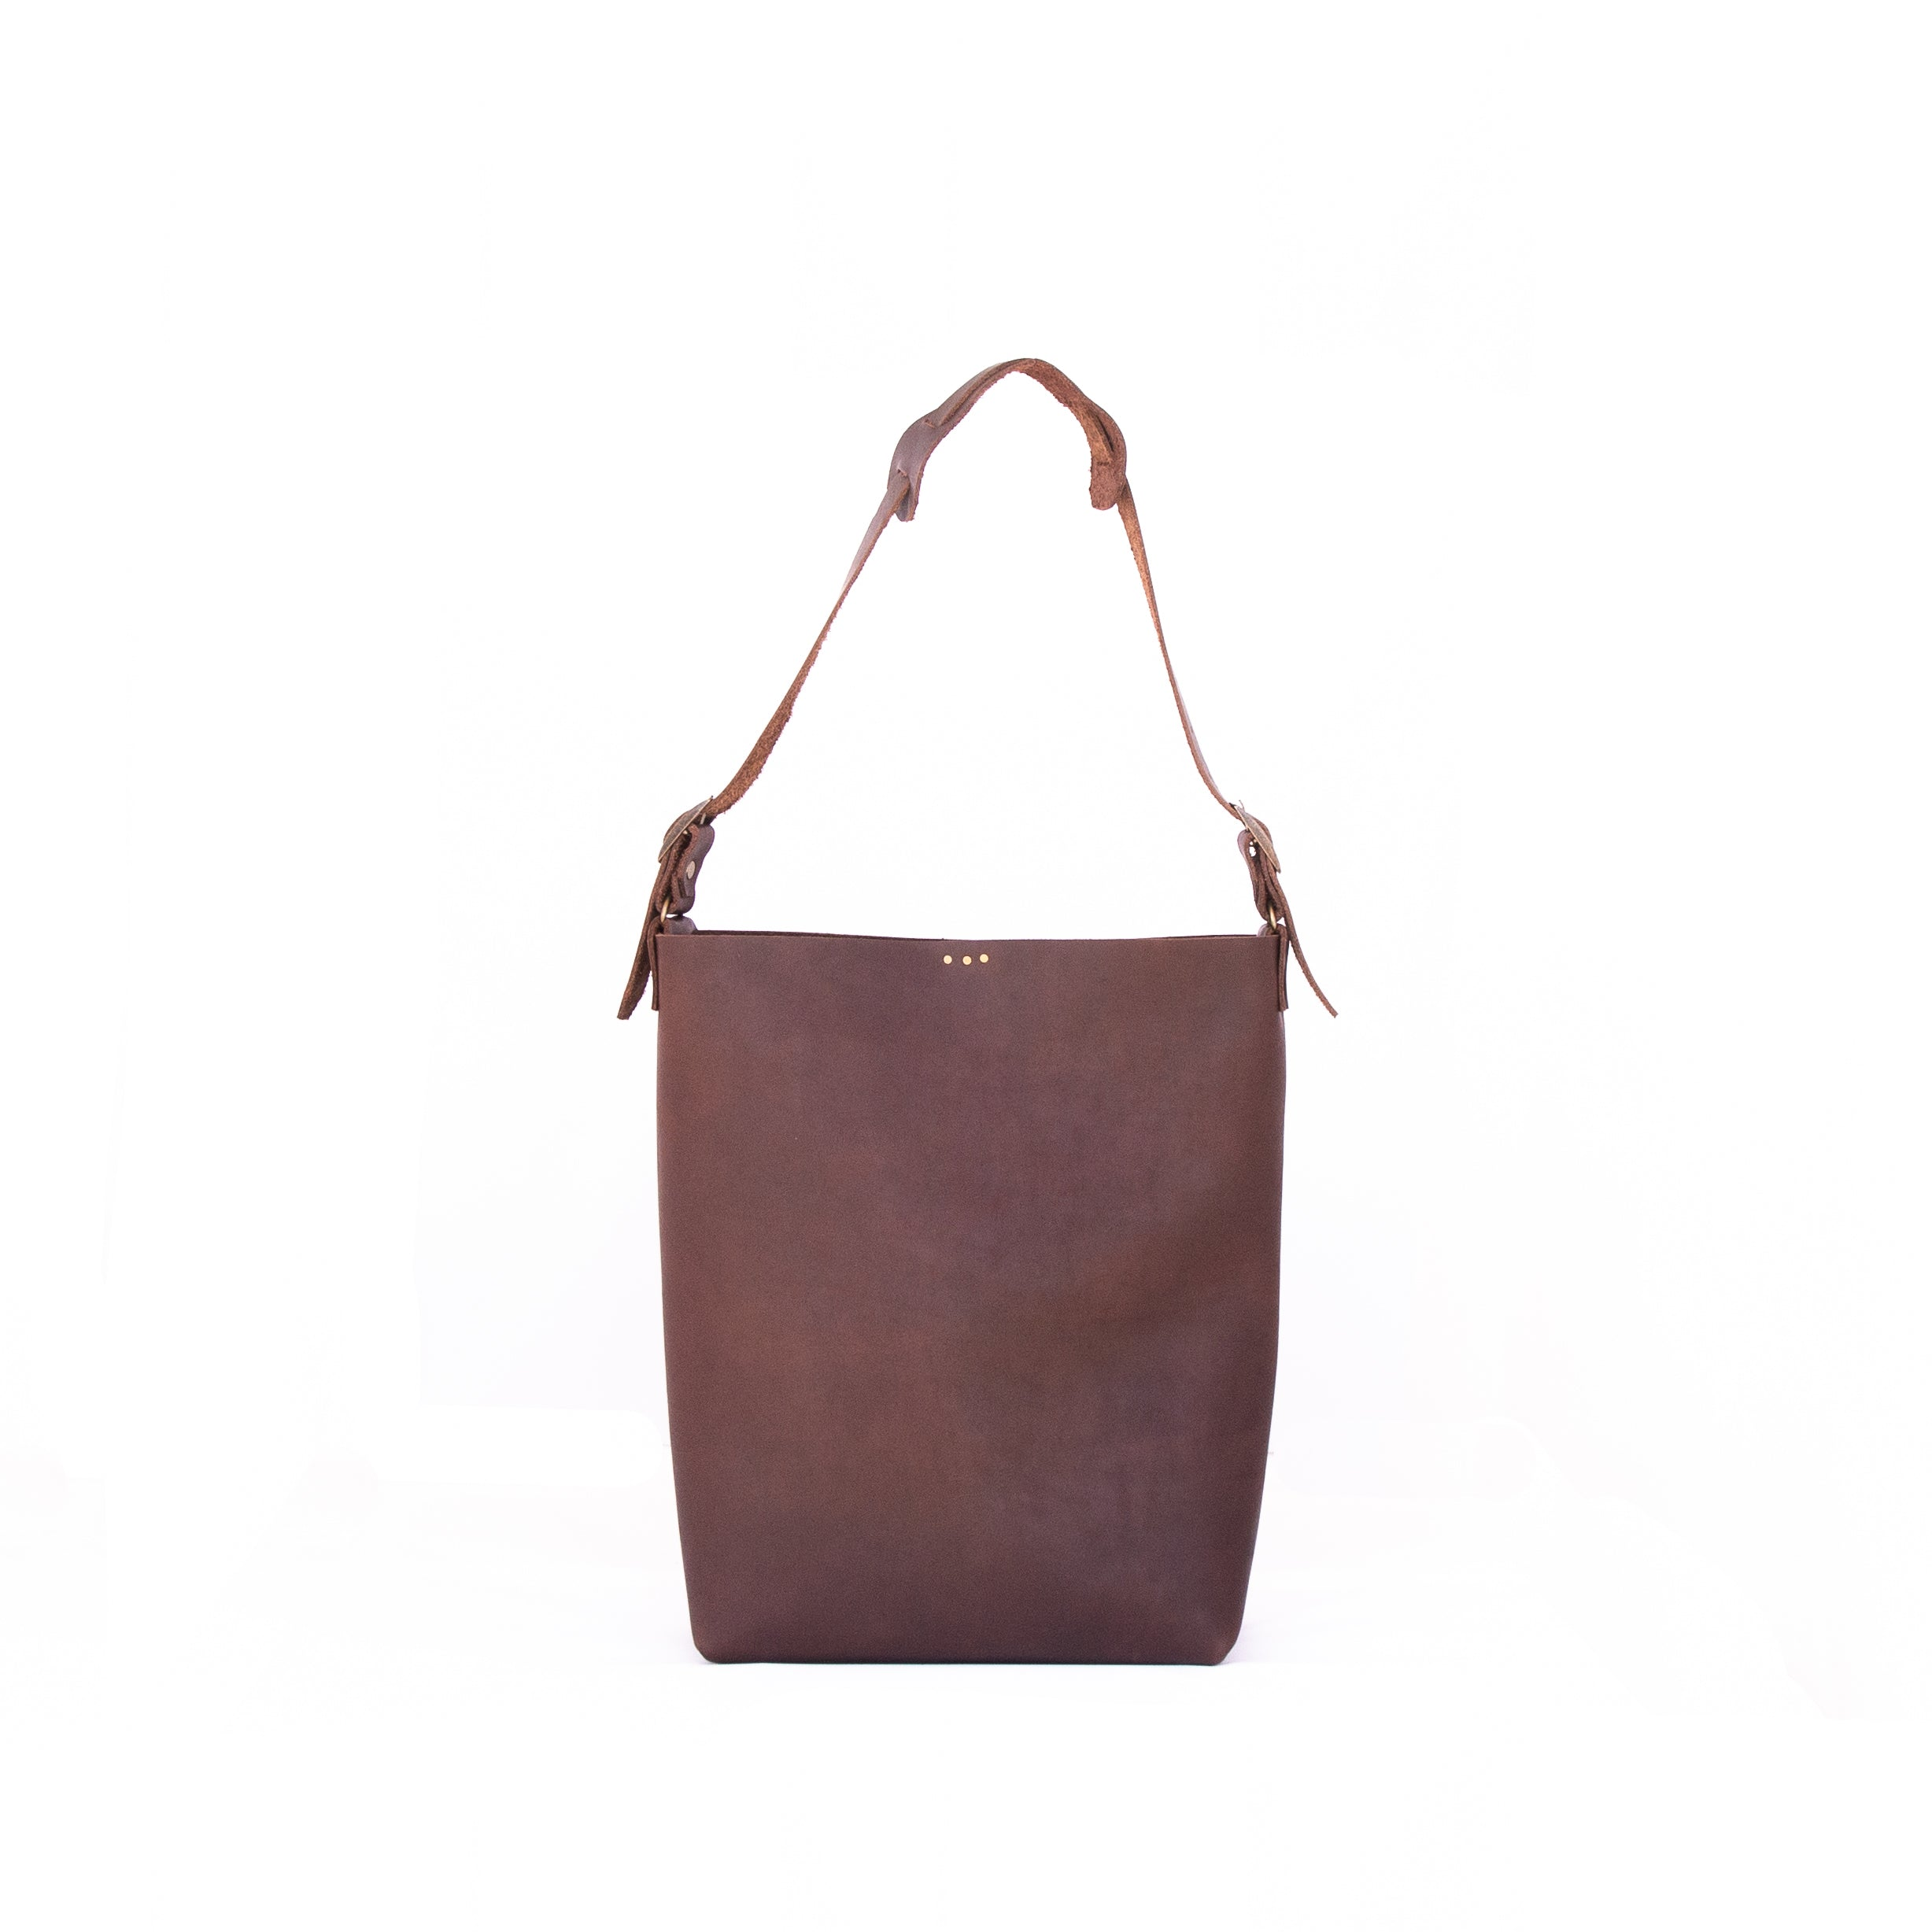 Lady Bag in Brown Leather - handcrafted by Market Canvas Leather in Tofino, BC, Canada